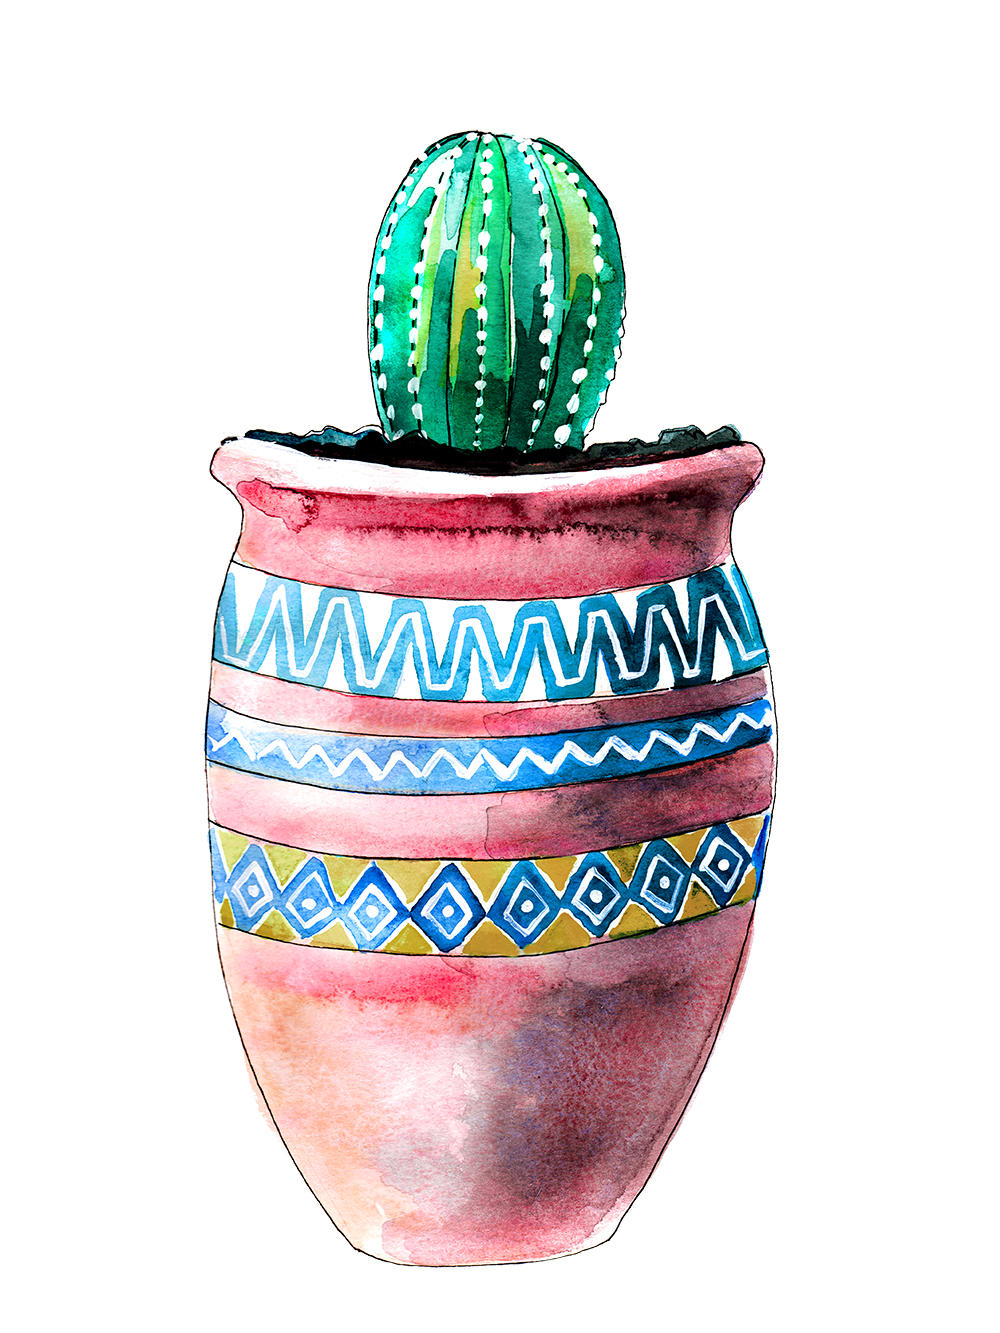 watercolor painting of cacti in mexican pot, artwork and paintings by Crystal Smith in BC Canada